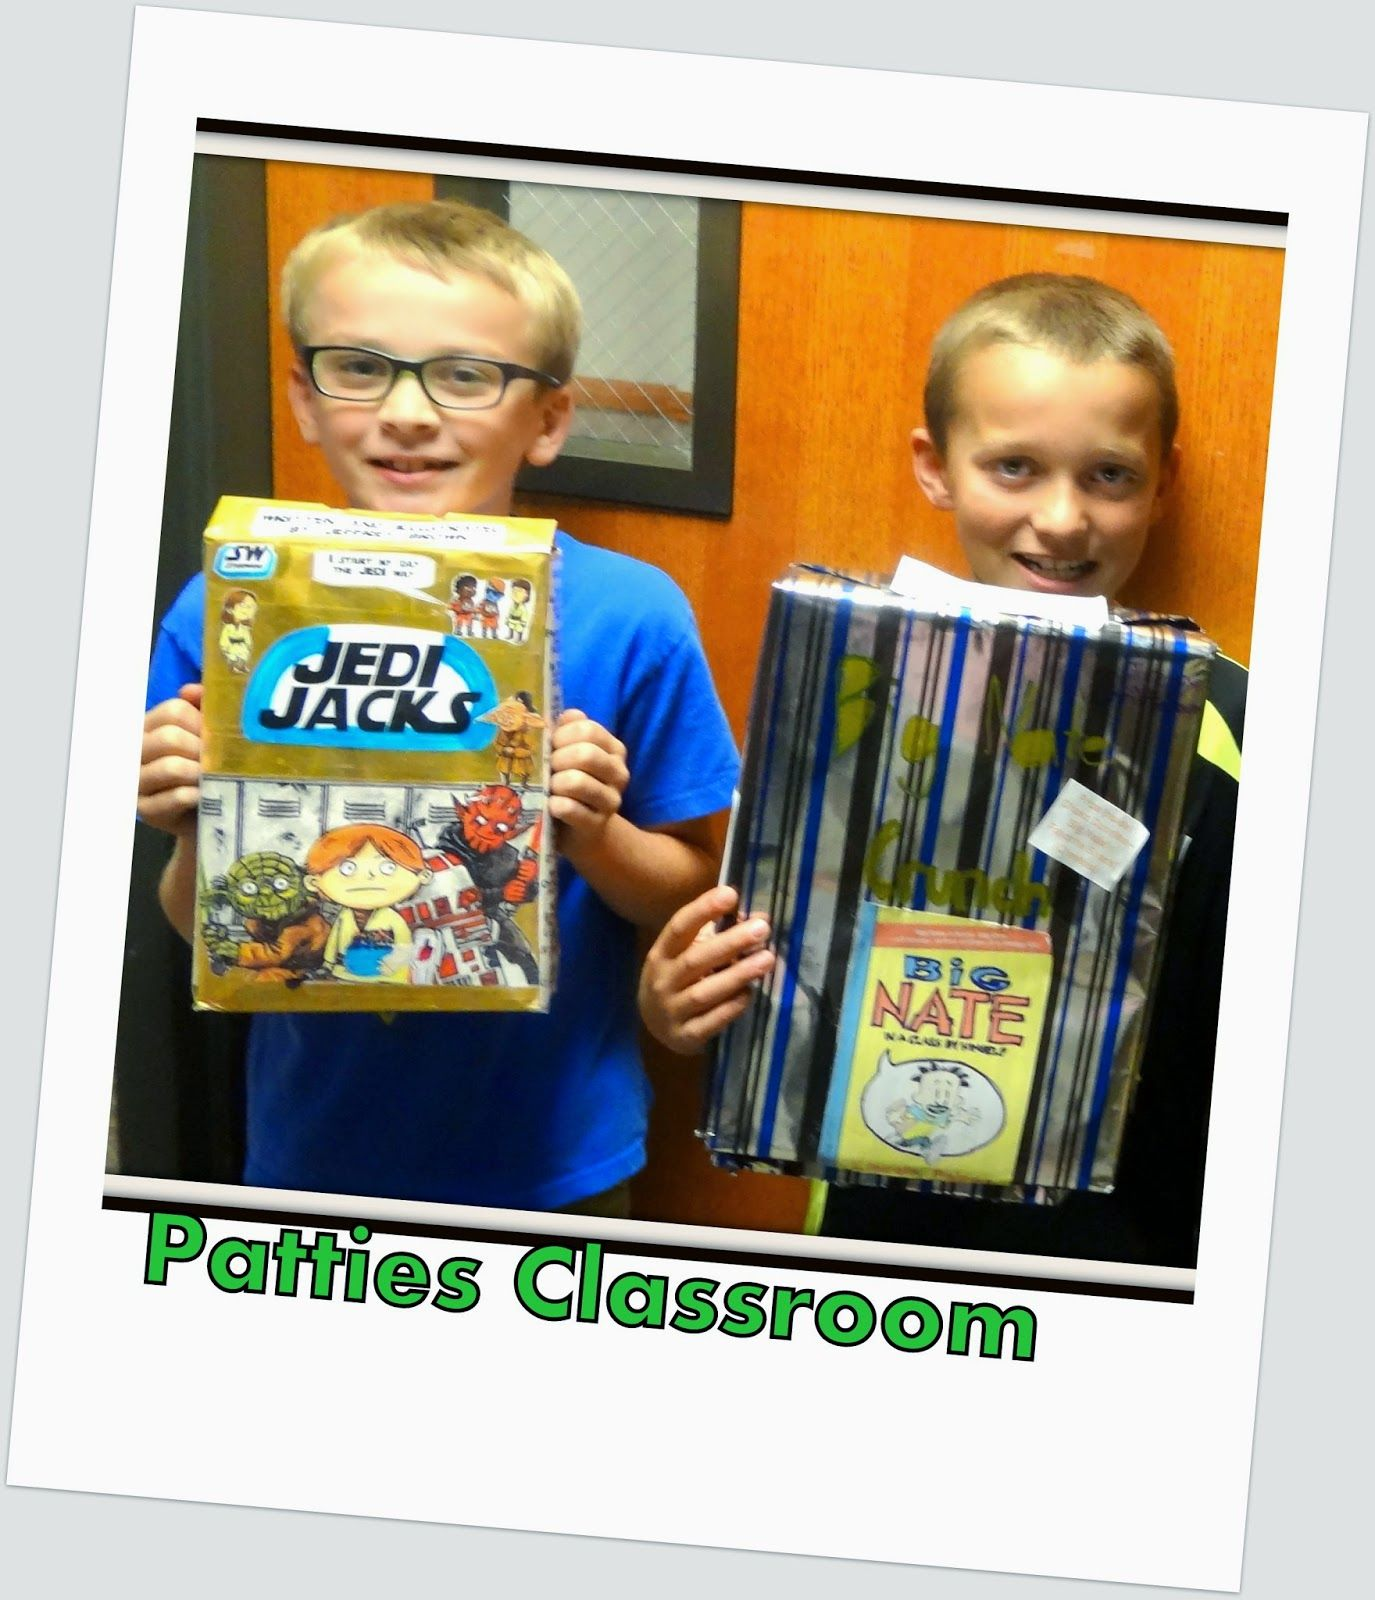 Patties Classroom Cereal Box Book Reports